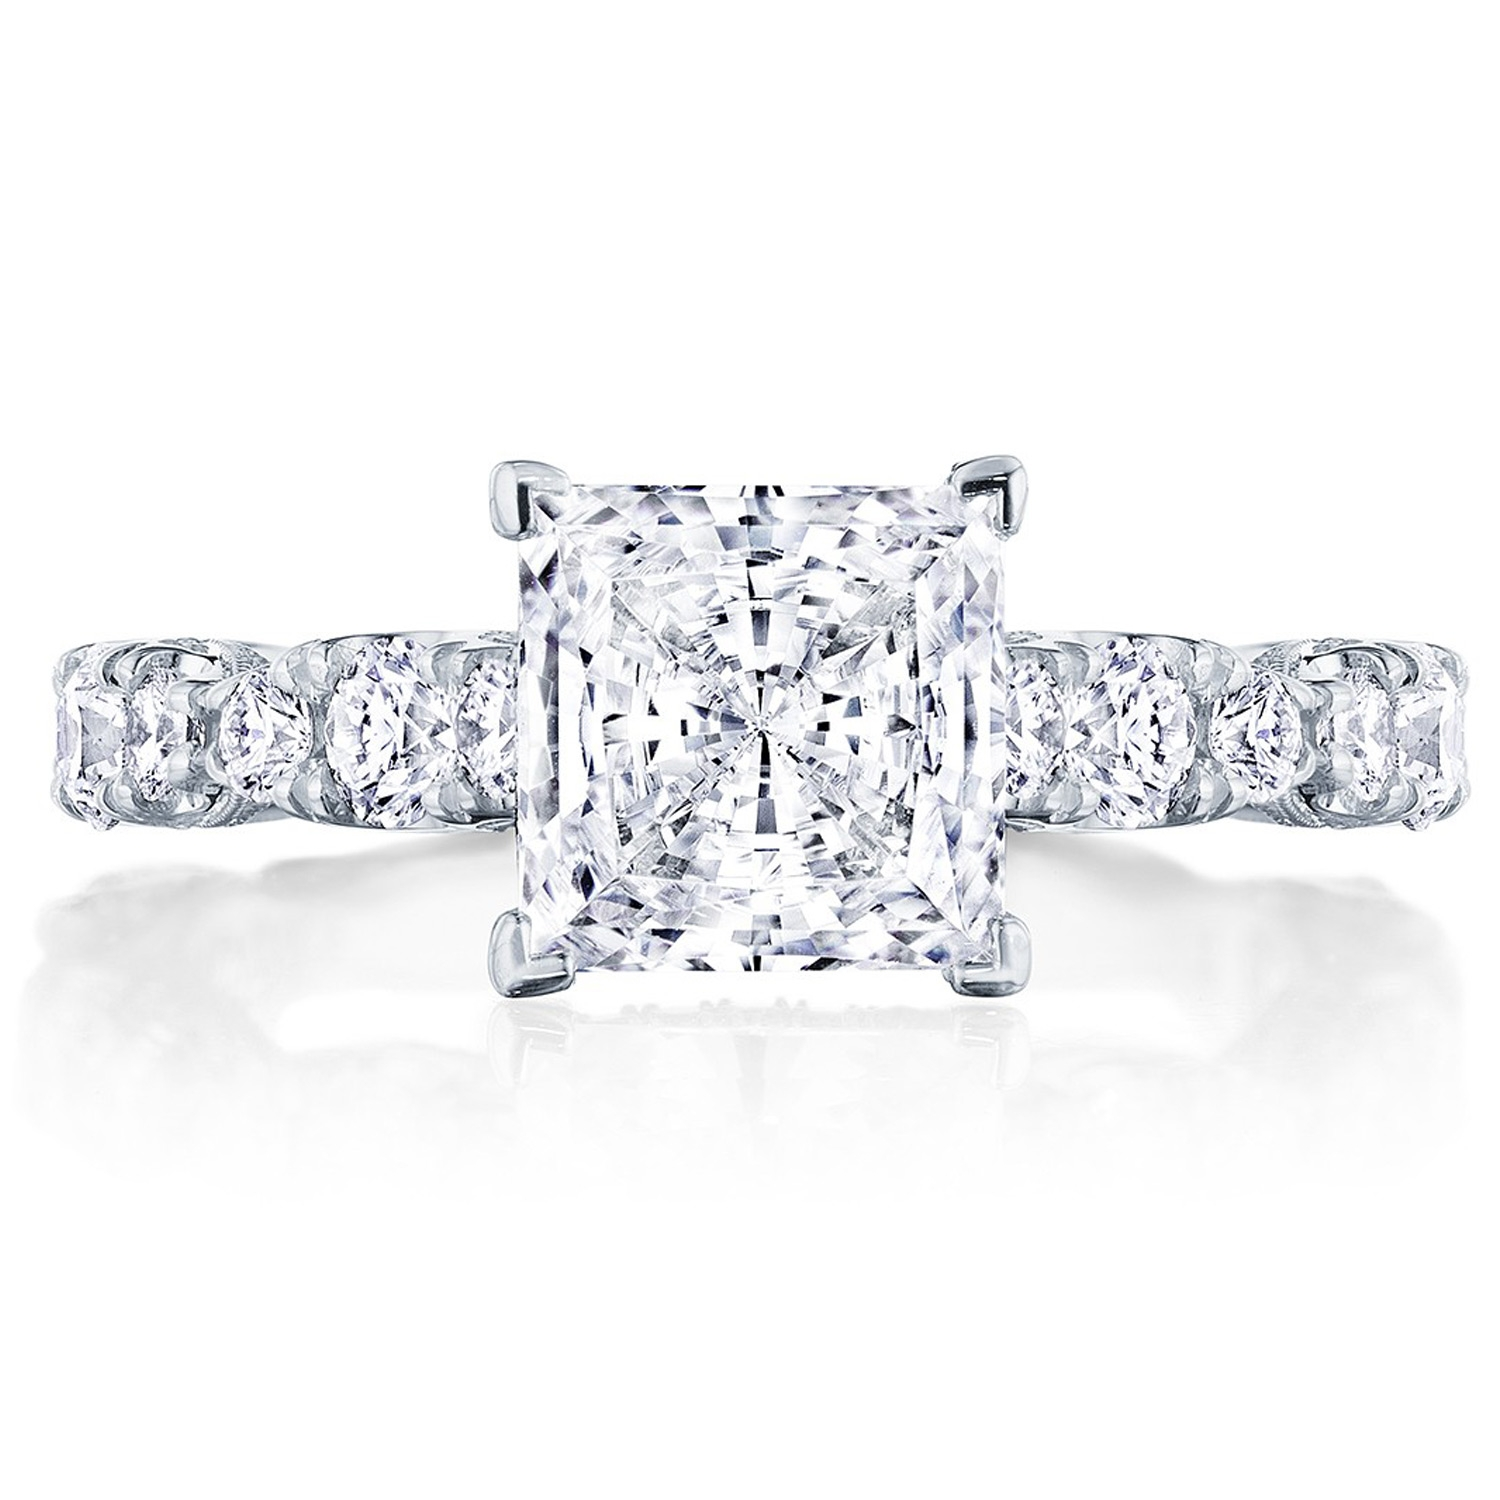 HT2654PR7 Platinum Tacori RoyalT Engagement Ring